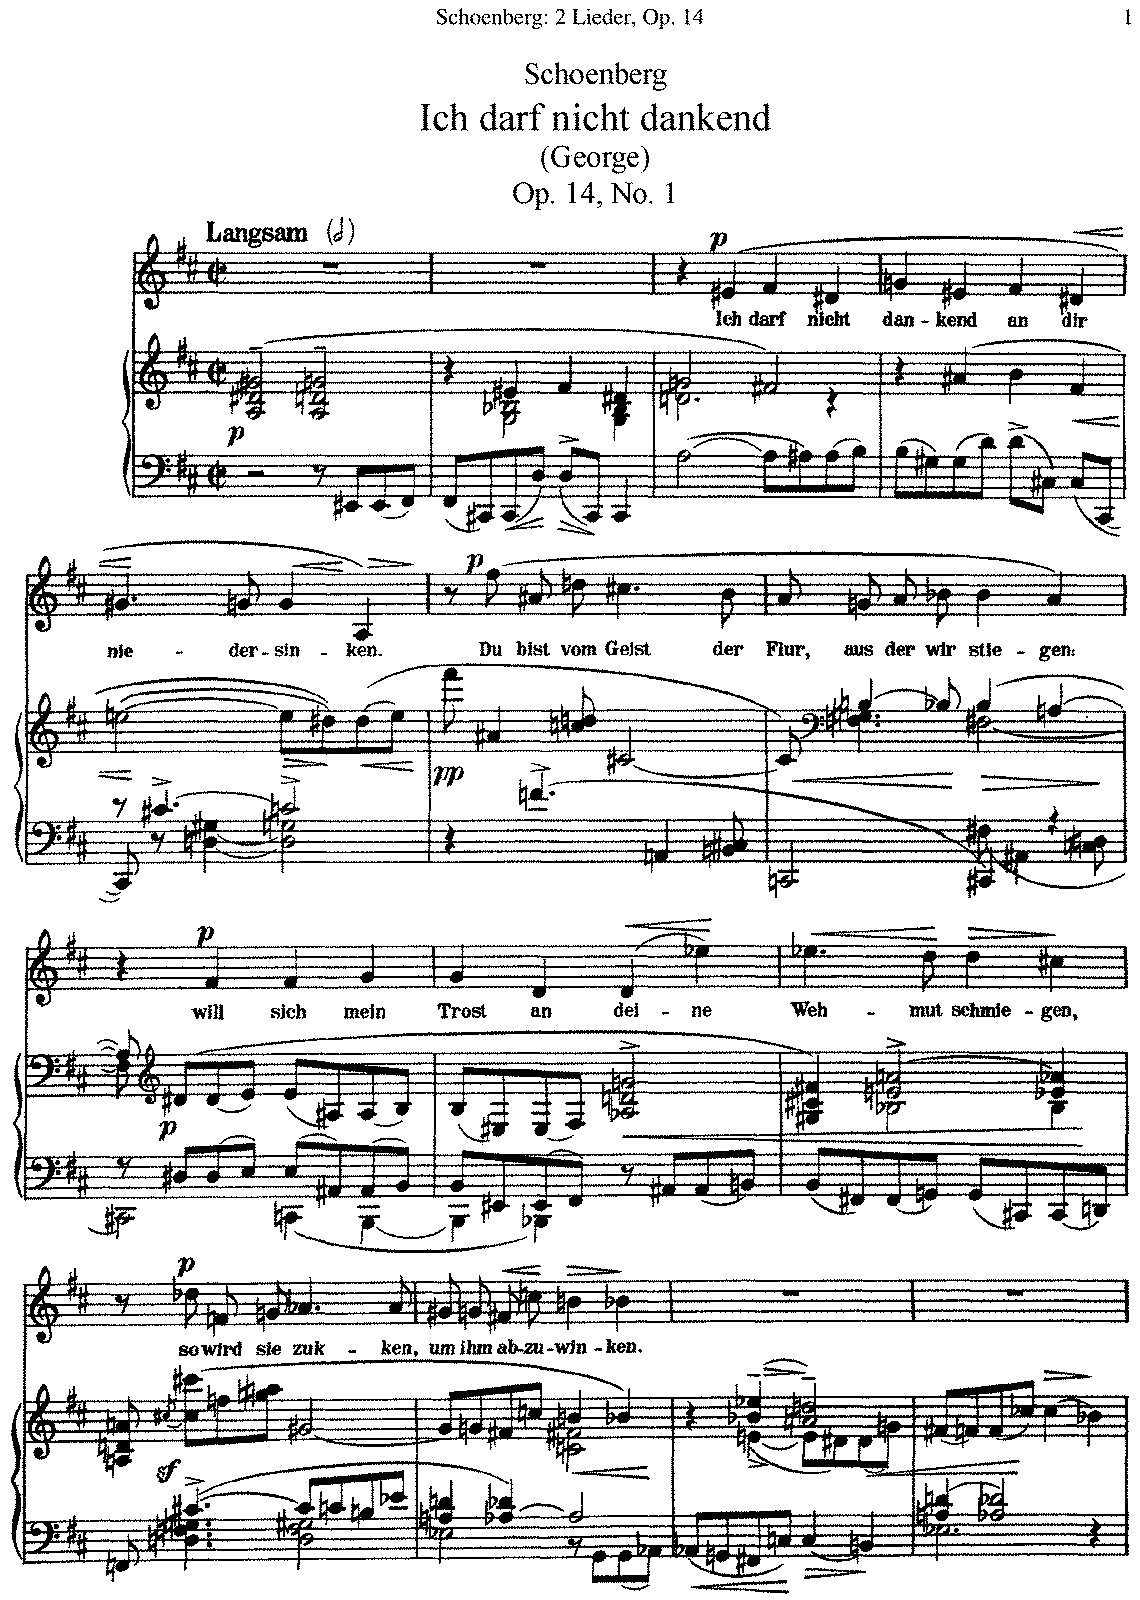 PMLP53933-Schoenberg - 2 Lieder, Op. 14 (voice and piano).pdf